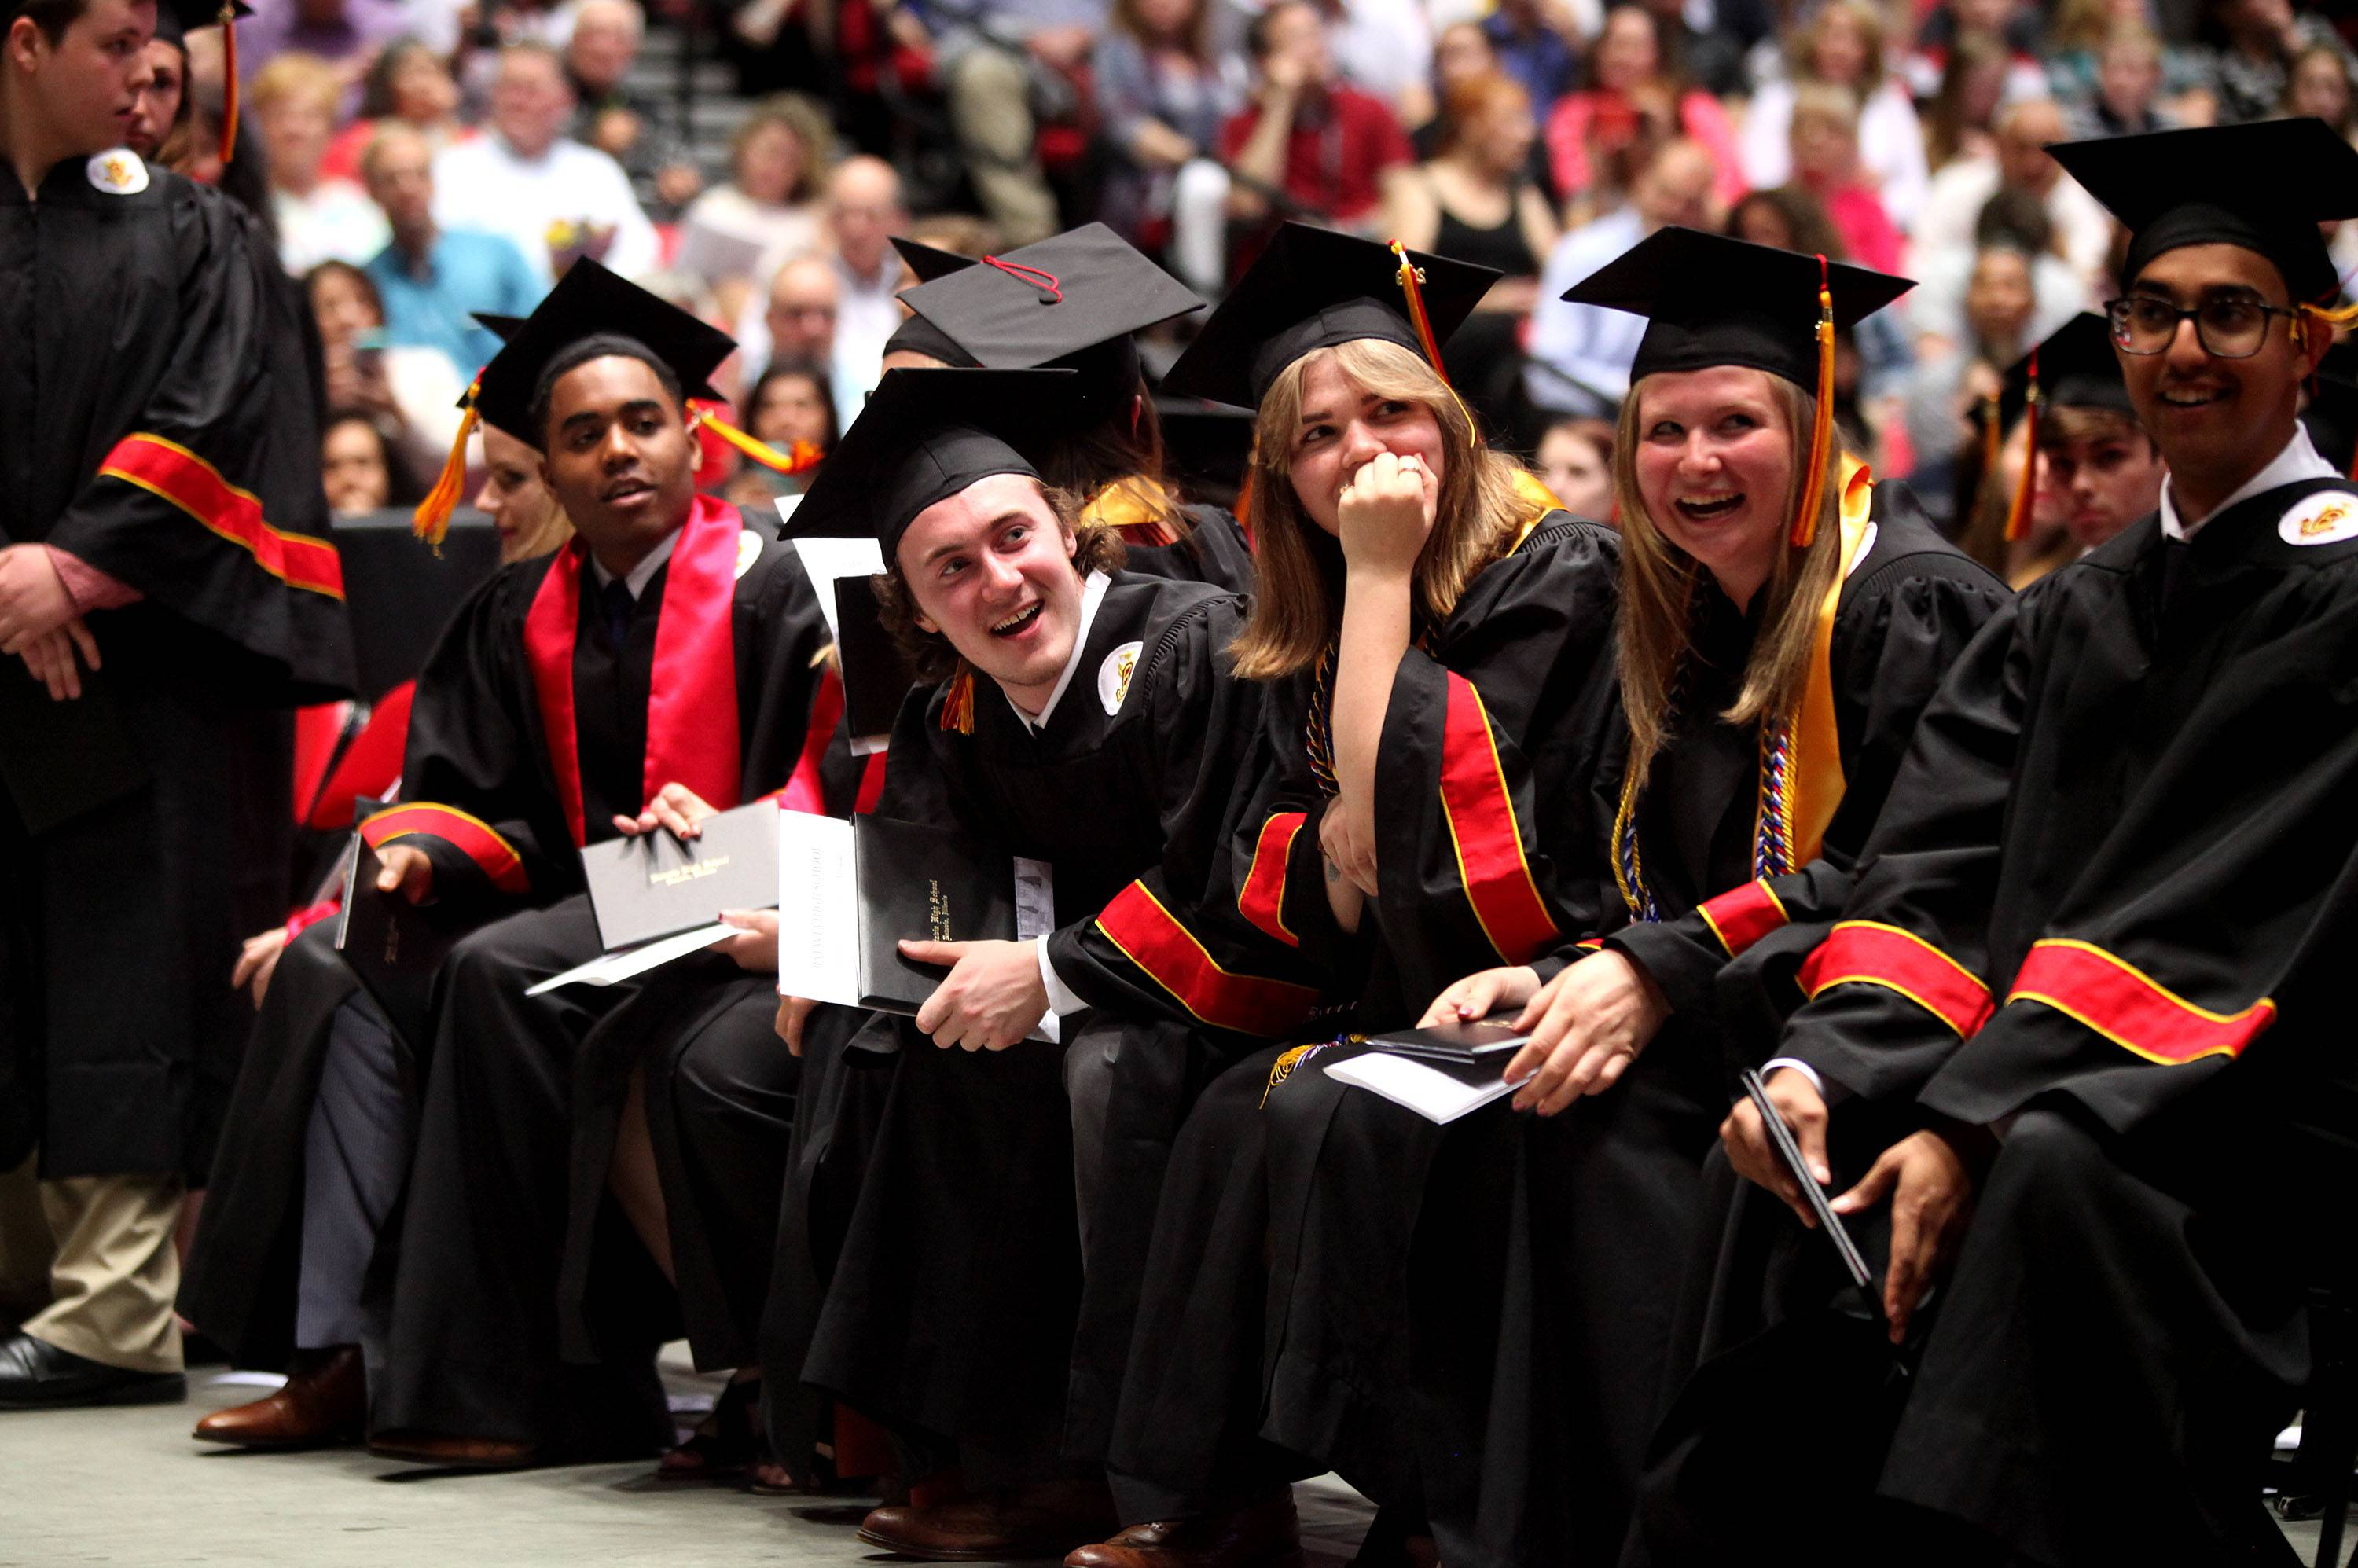 Batavia High School graduates share a laugh during the school's 2019 Commencement Ceremony on May 22 at the Northern Illinois University Convocation Center in DeKalb.